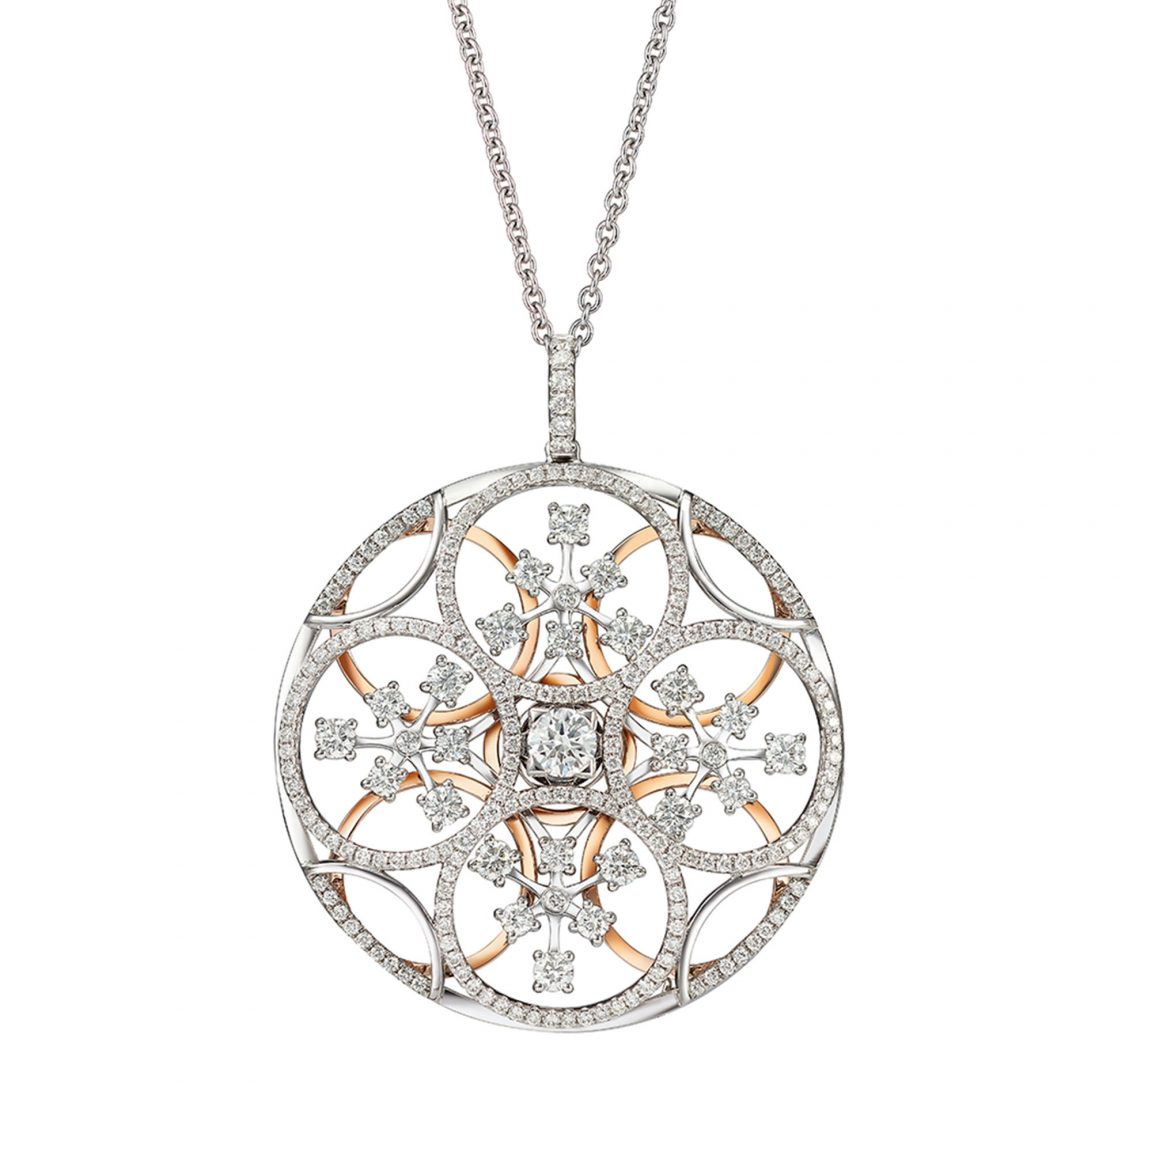 The Pinwheels Diamond Pendant Necklace